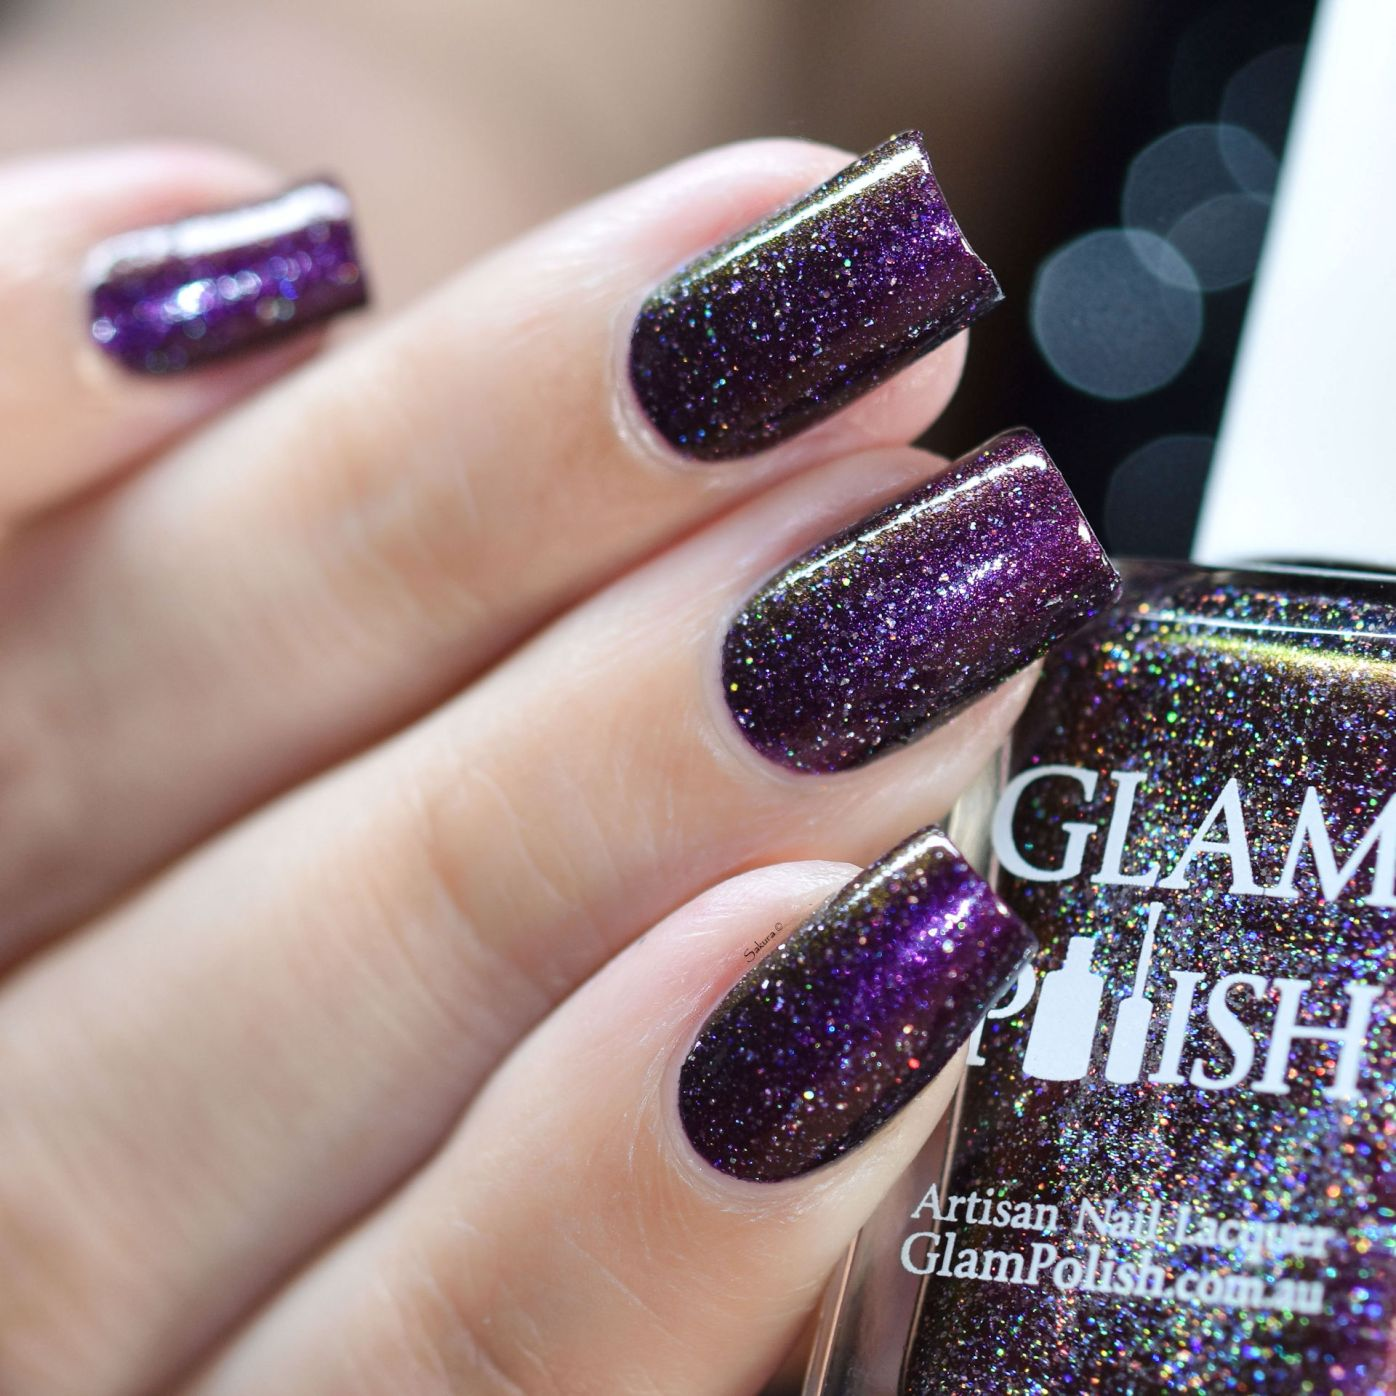 GLAMPOLISH DIM THE GHOST WITH THE MOST BABE 3